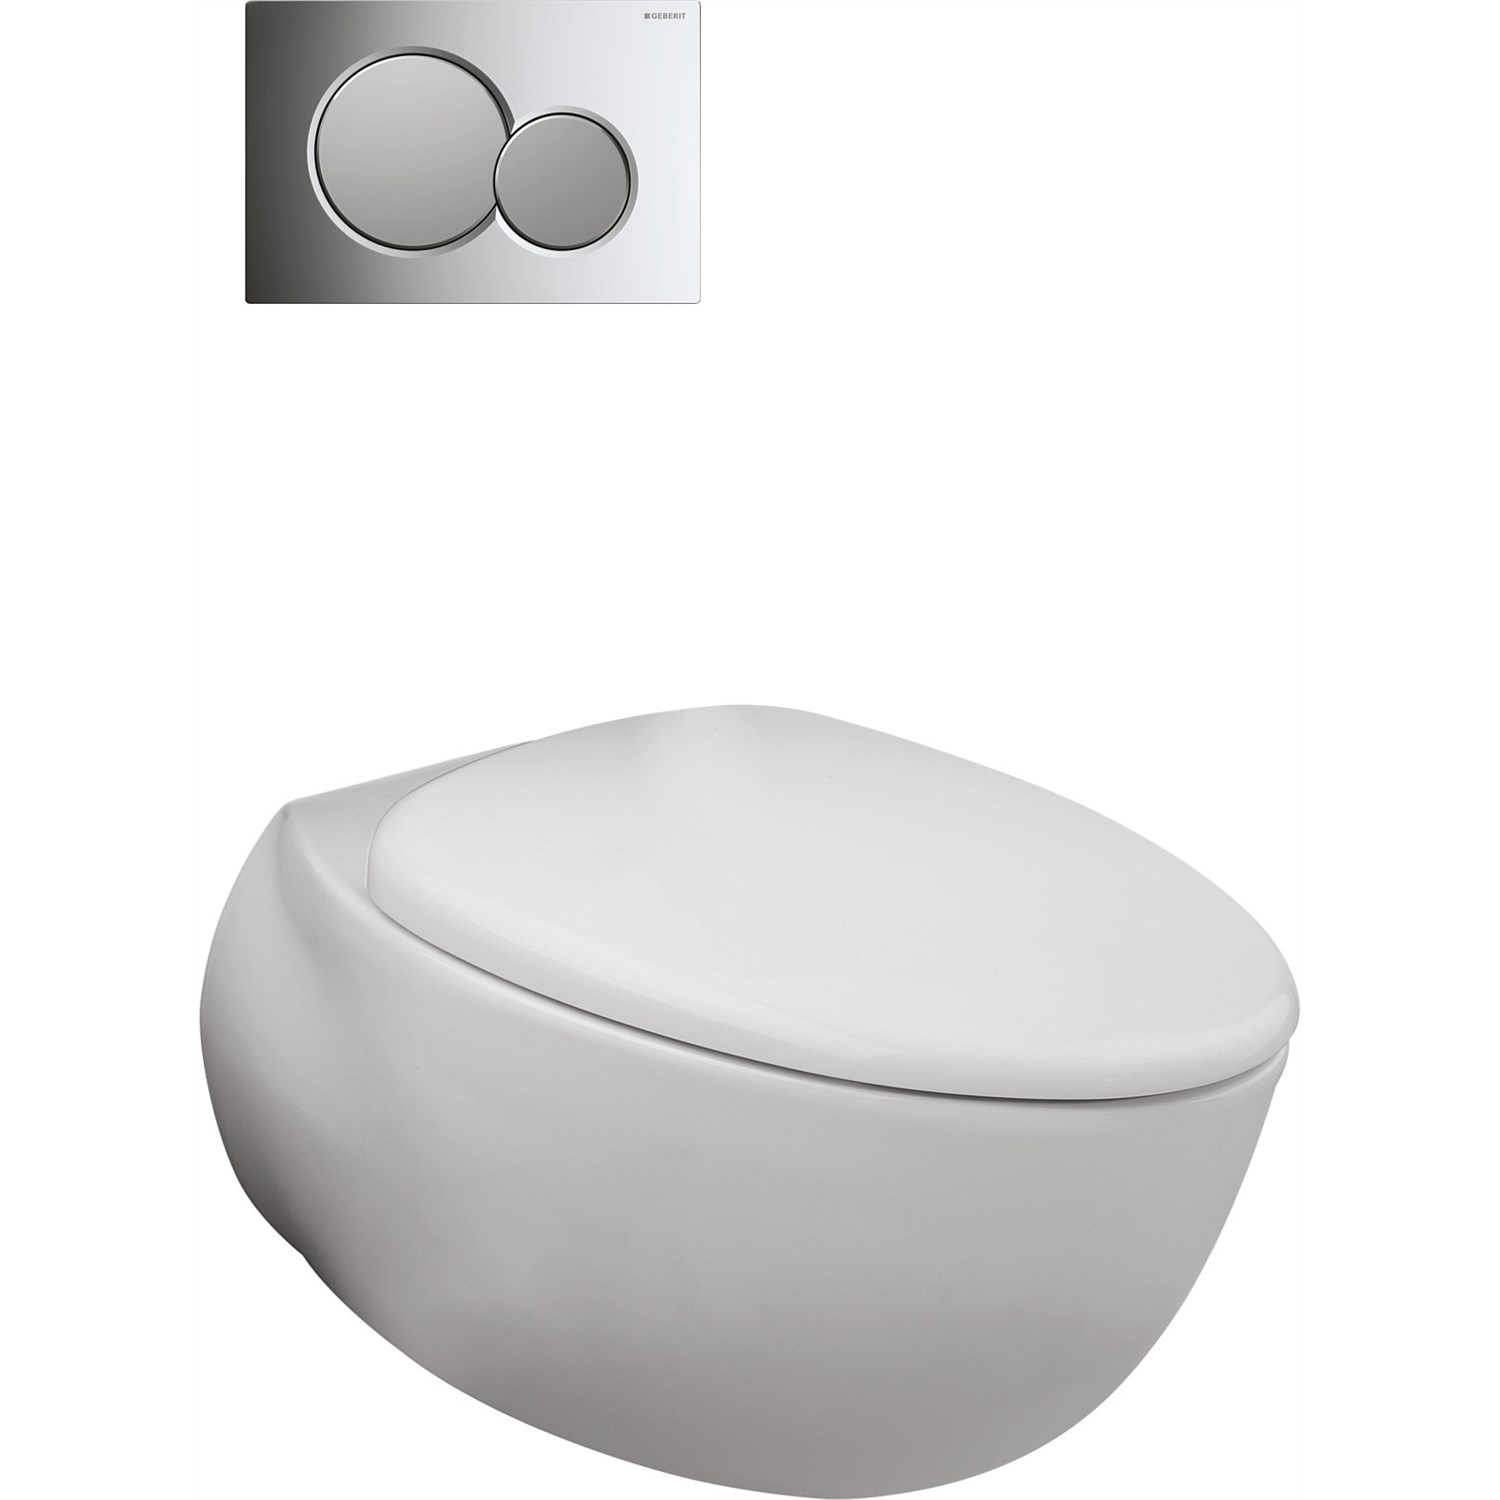 Toto Le Muse Wall Hung Toilet Suite